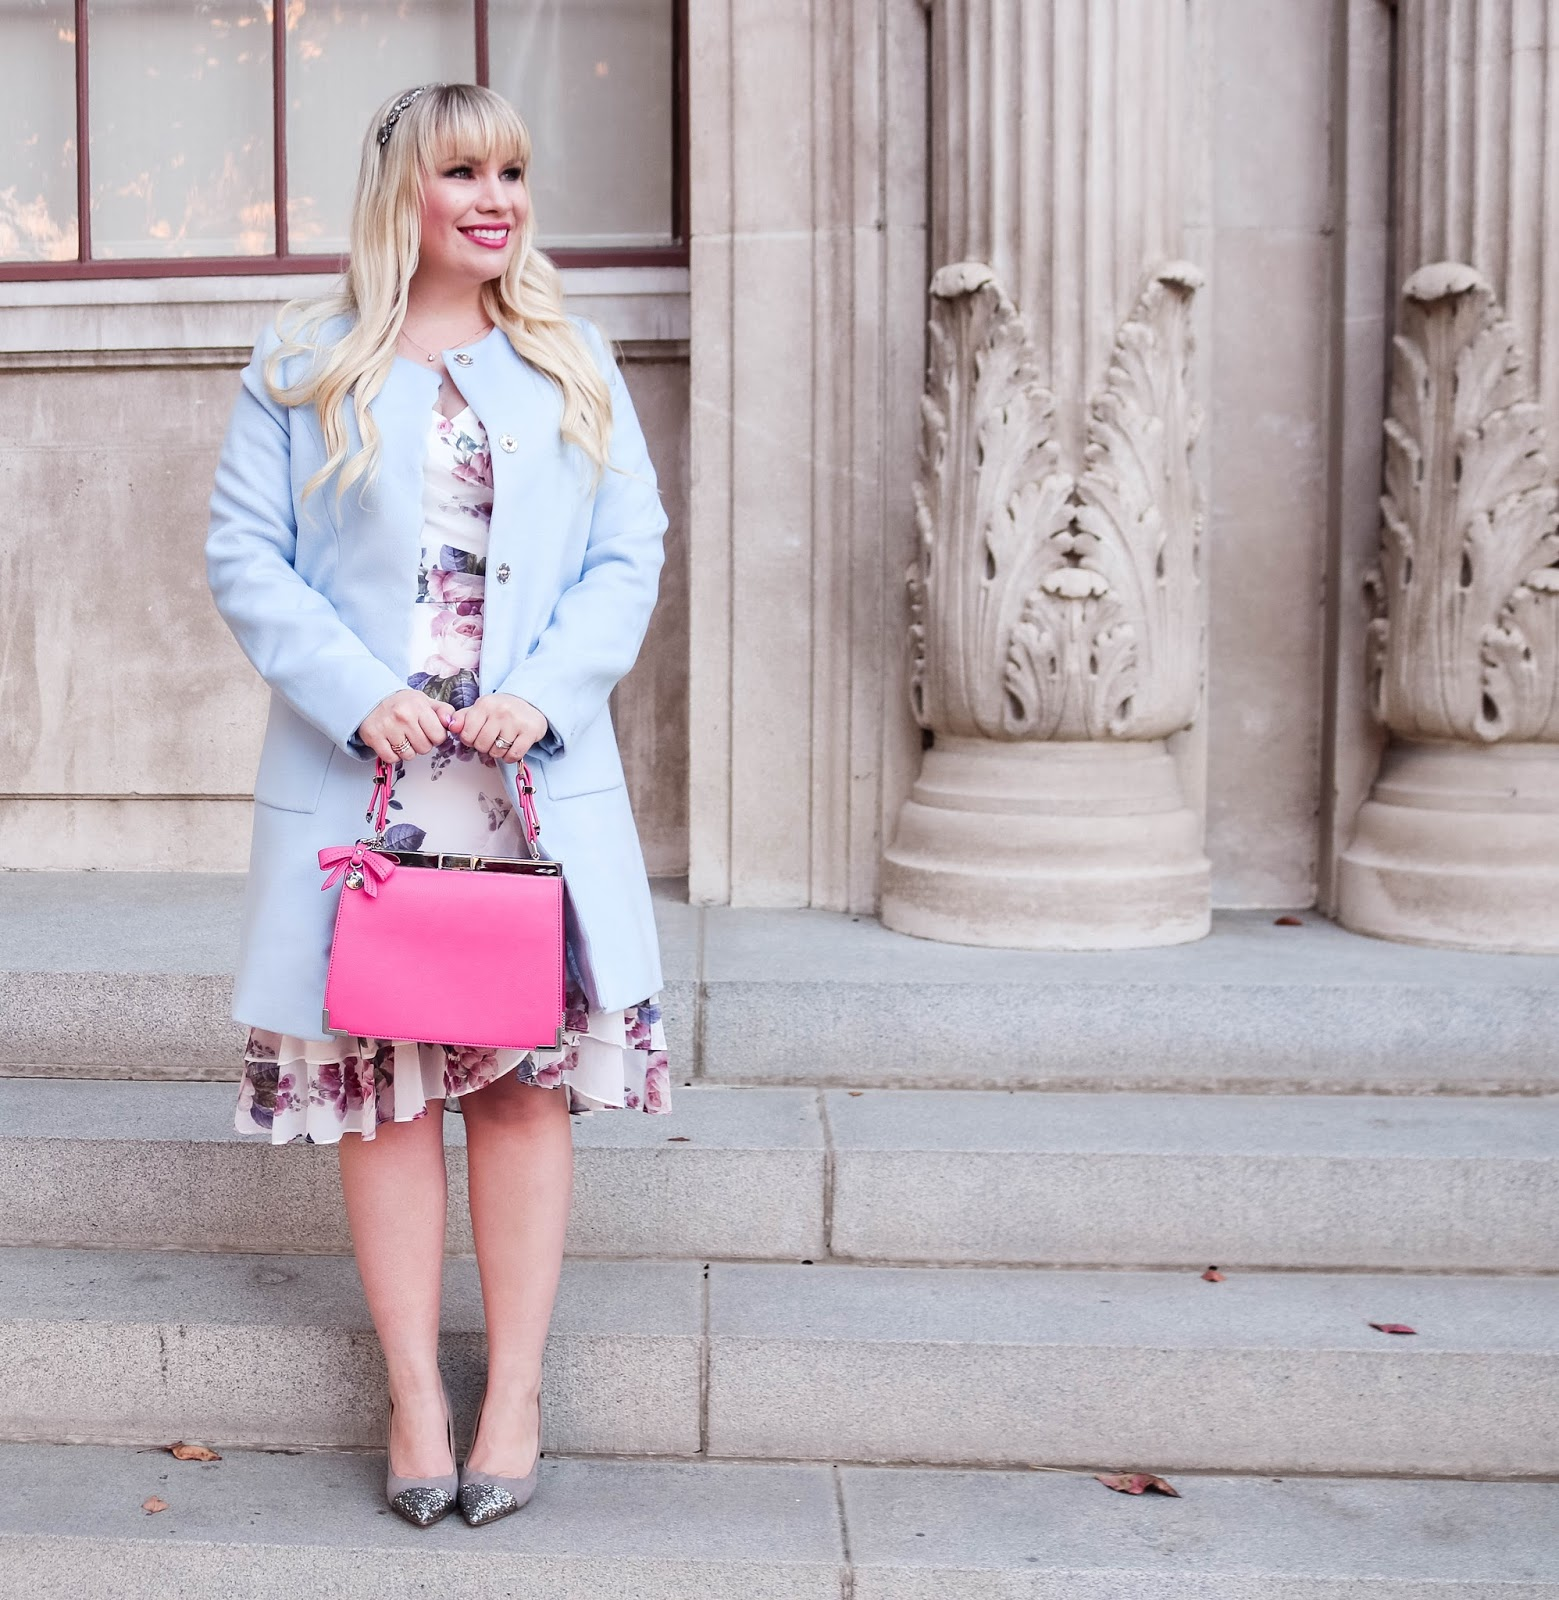 Floral Dress with Light Blue Coat